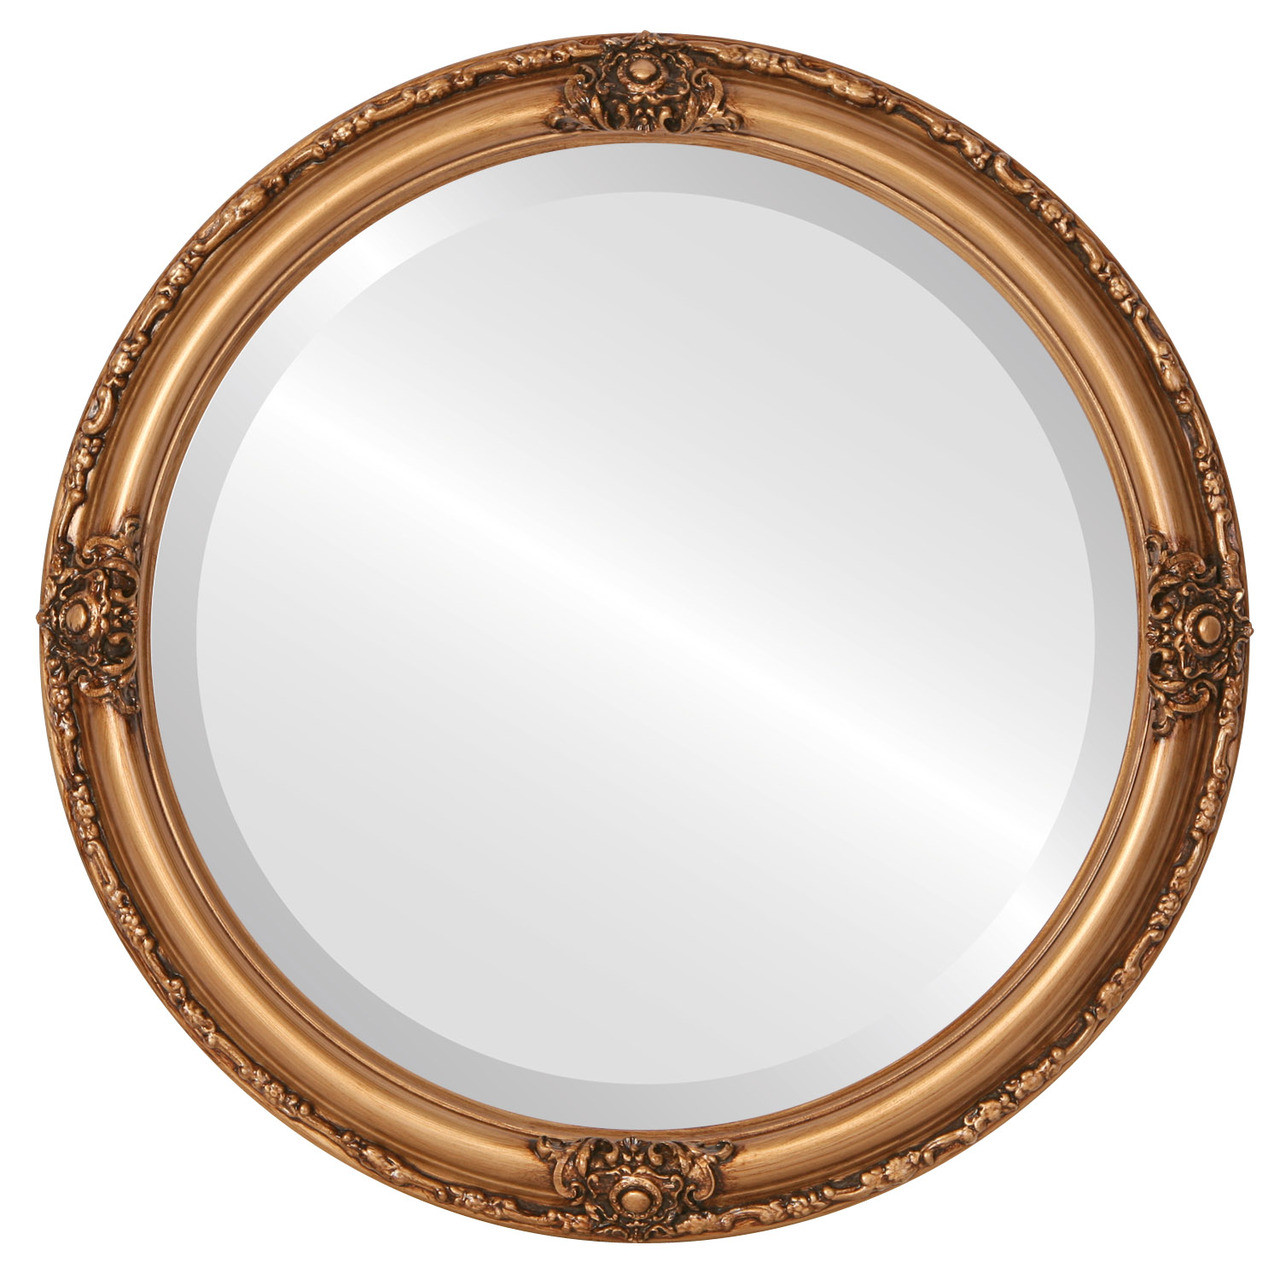 Round mirror with and without frame